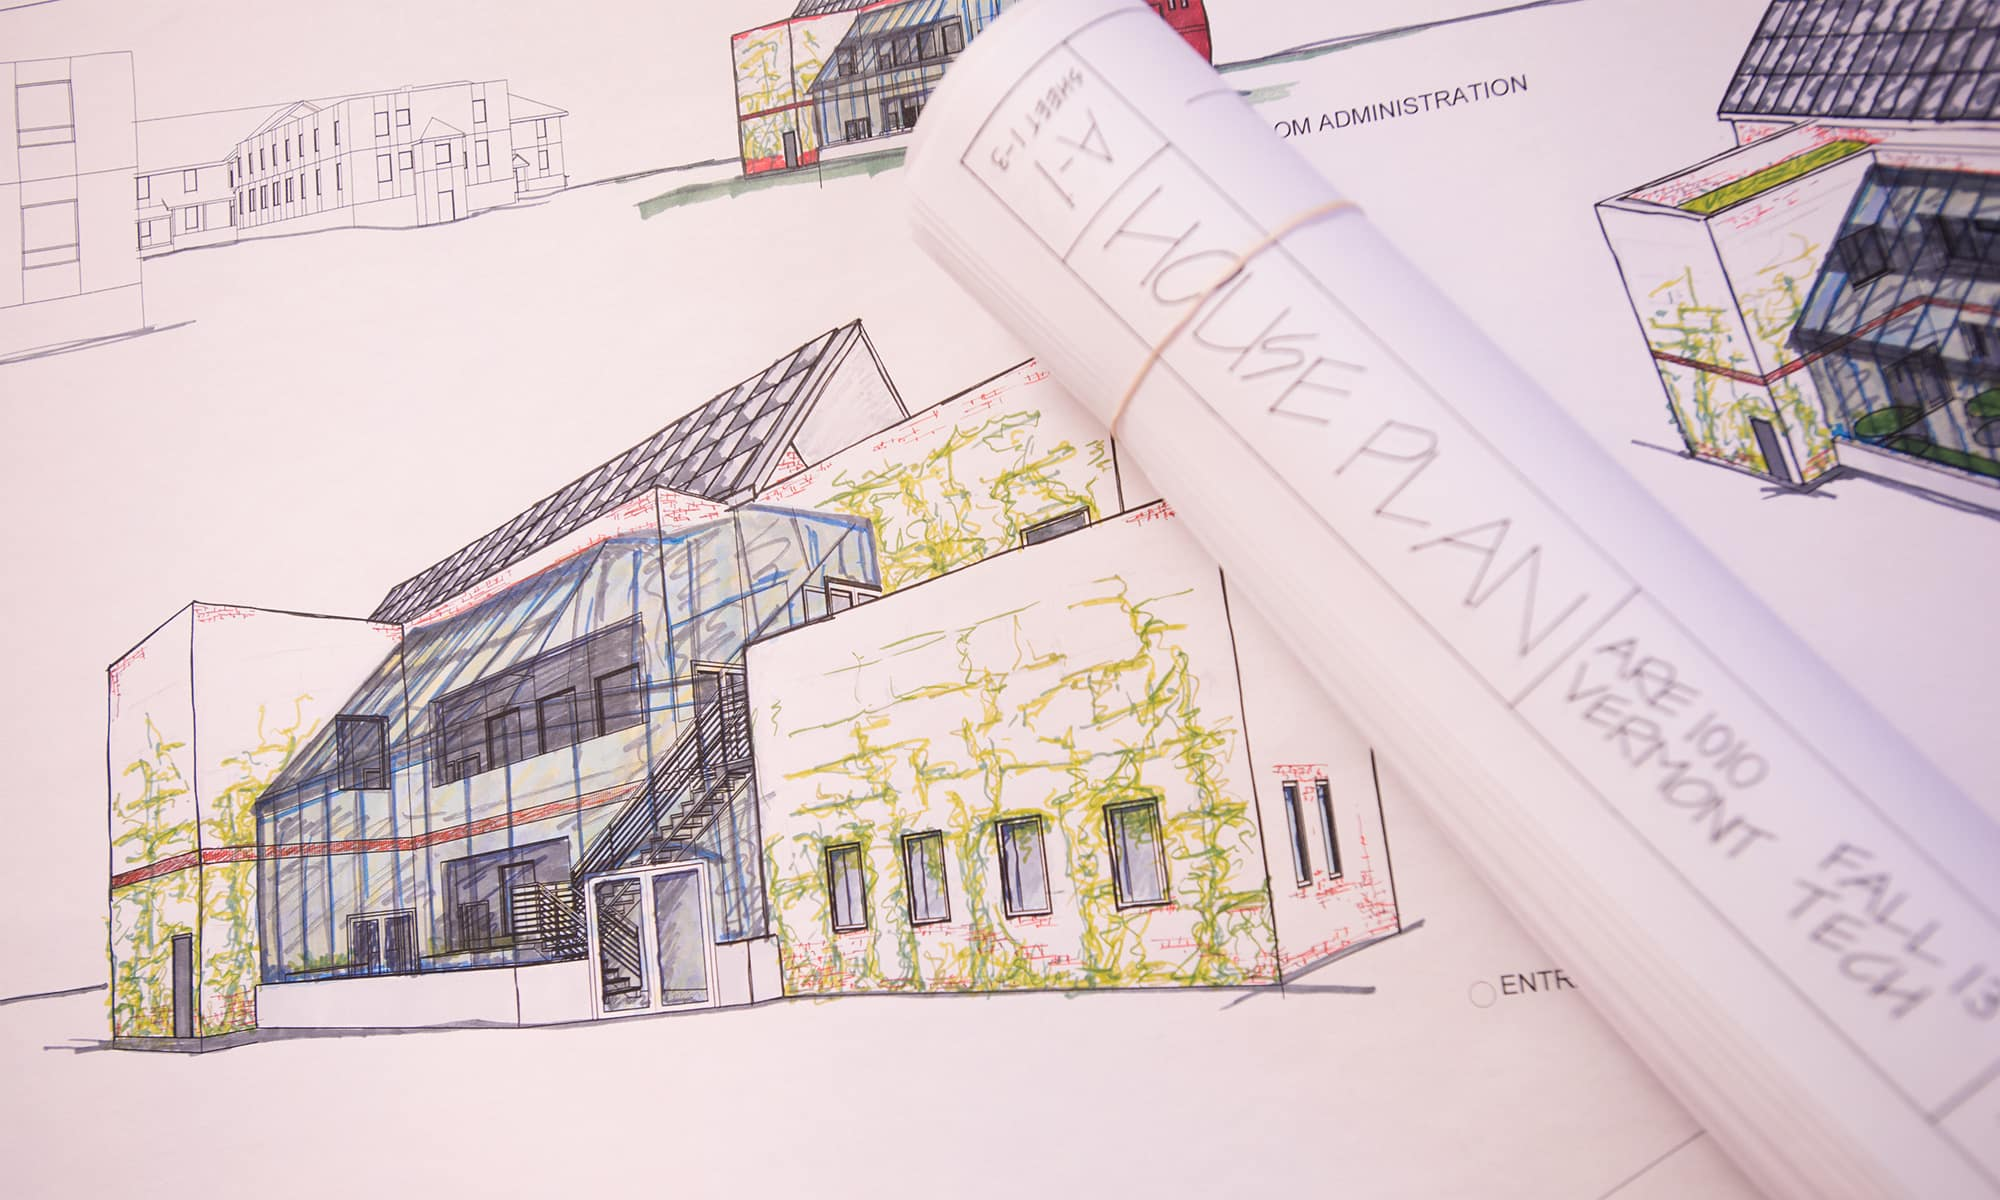 An architectural blueprint, architectural engineering, CADD